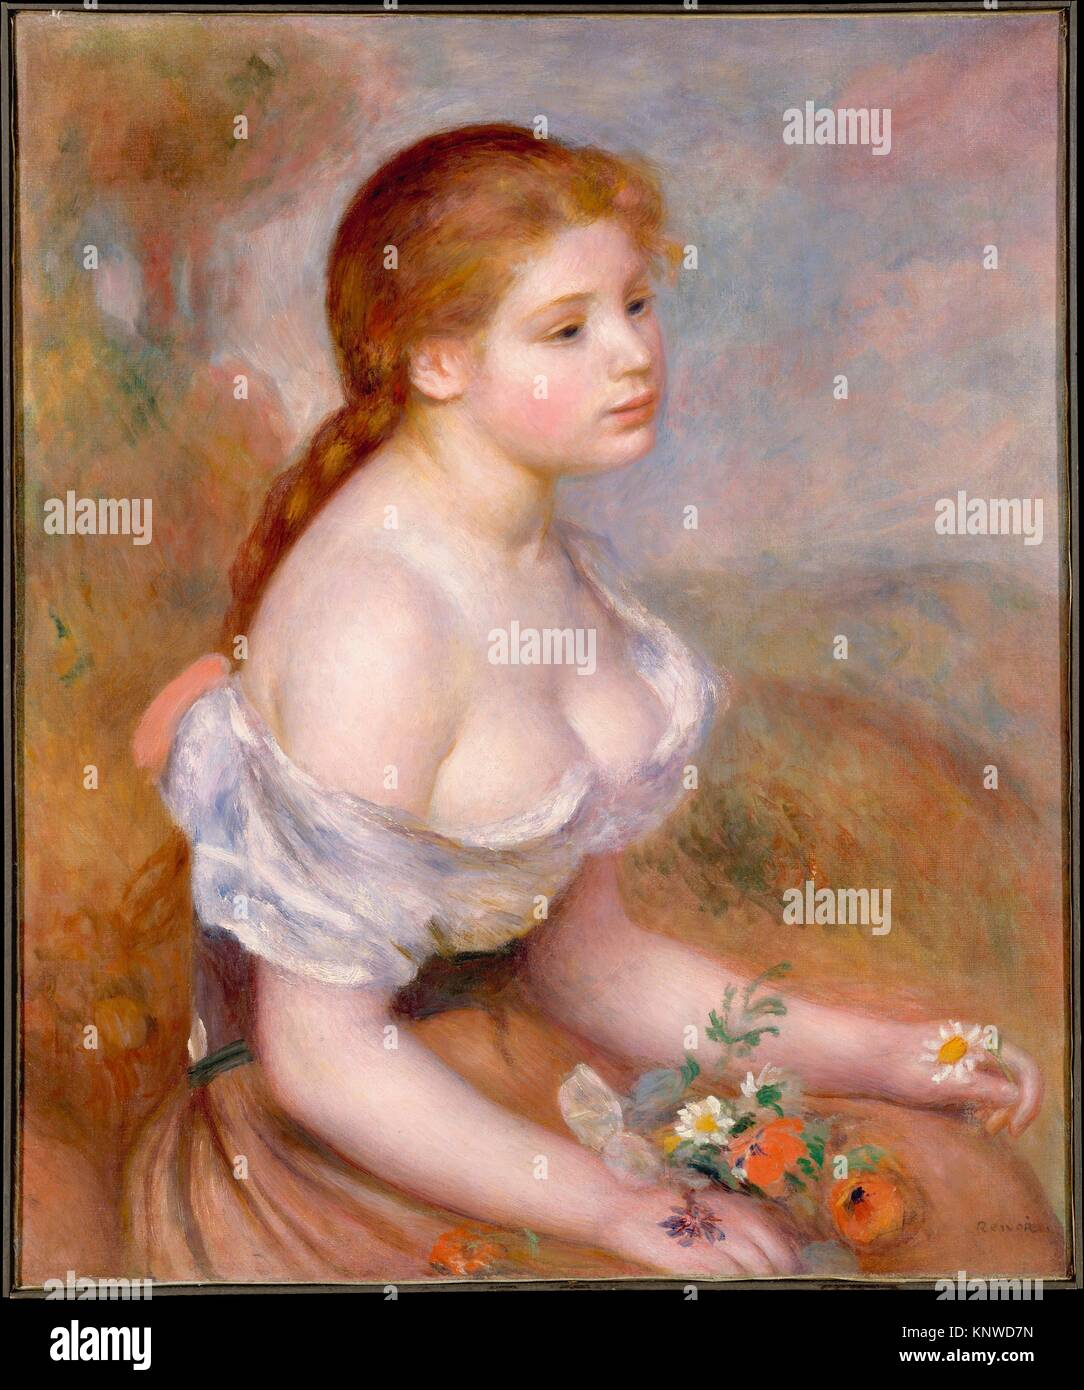 A Young Girl with Daisies. Artist: Auguste Renoir (French, Limoges 1841-1919 Cagnes-sur-Mer); Date: 1889; Medium: - Stock Image